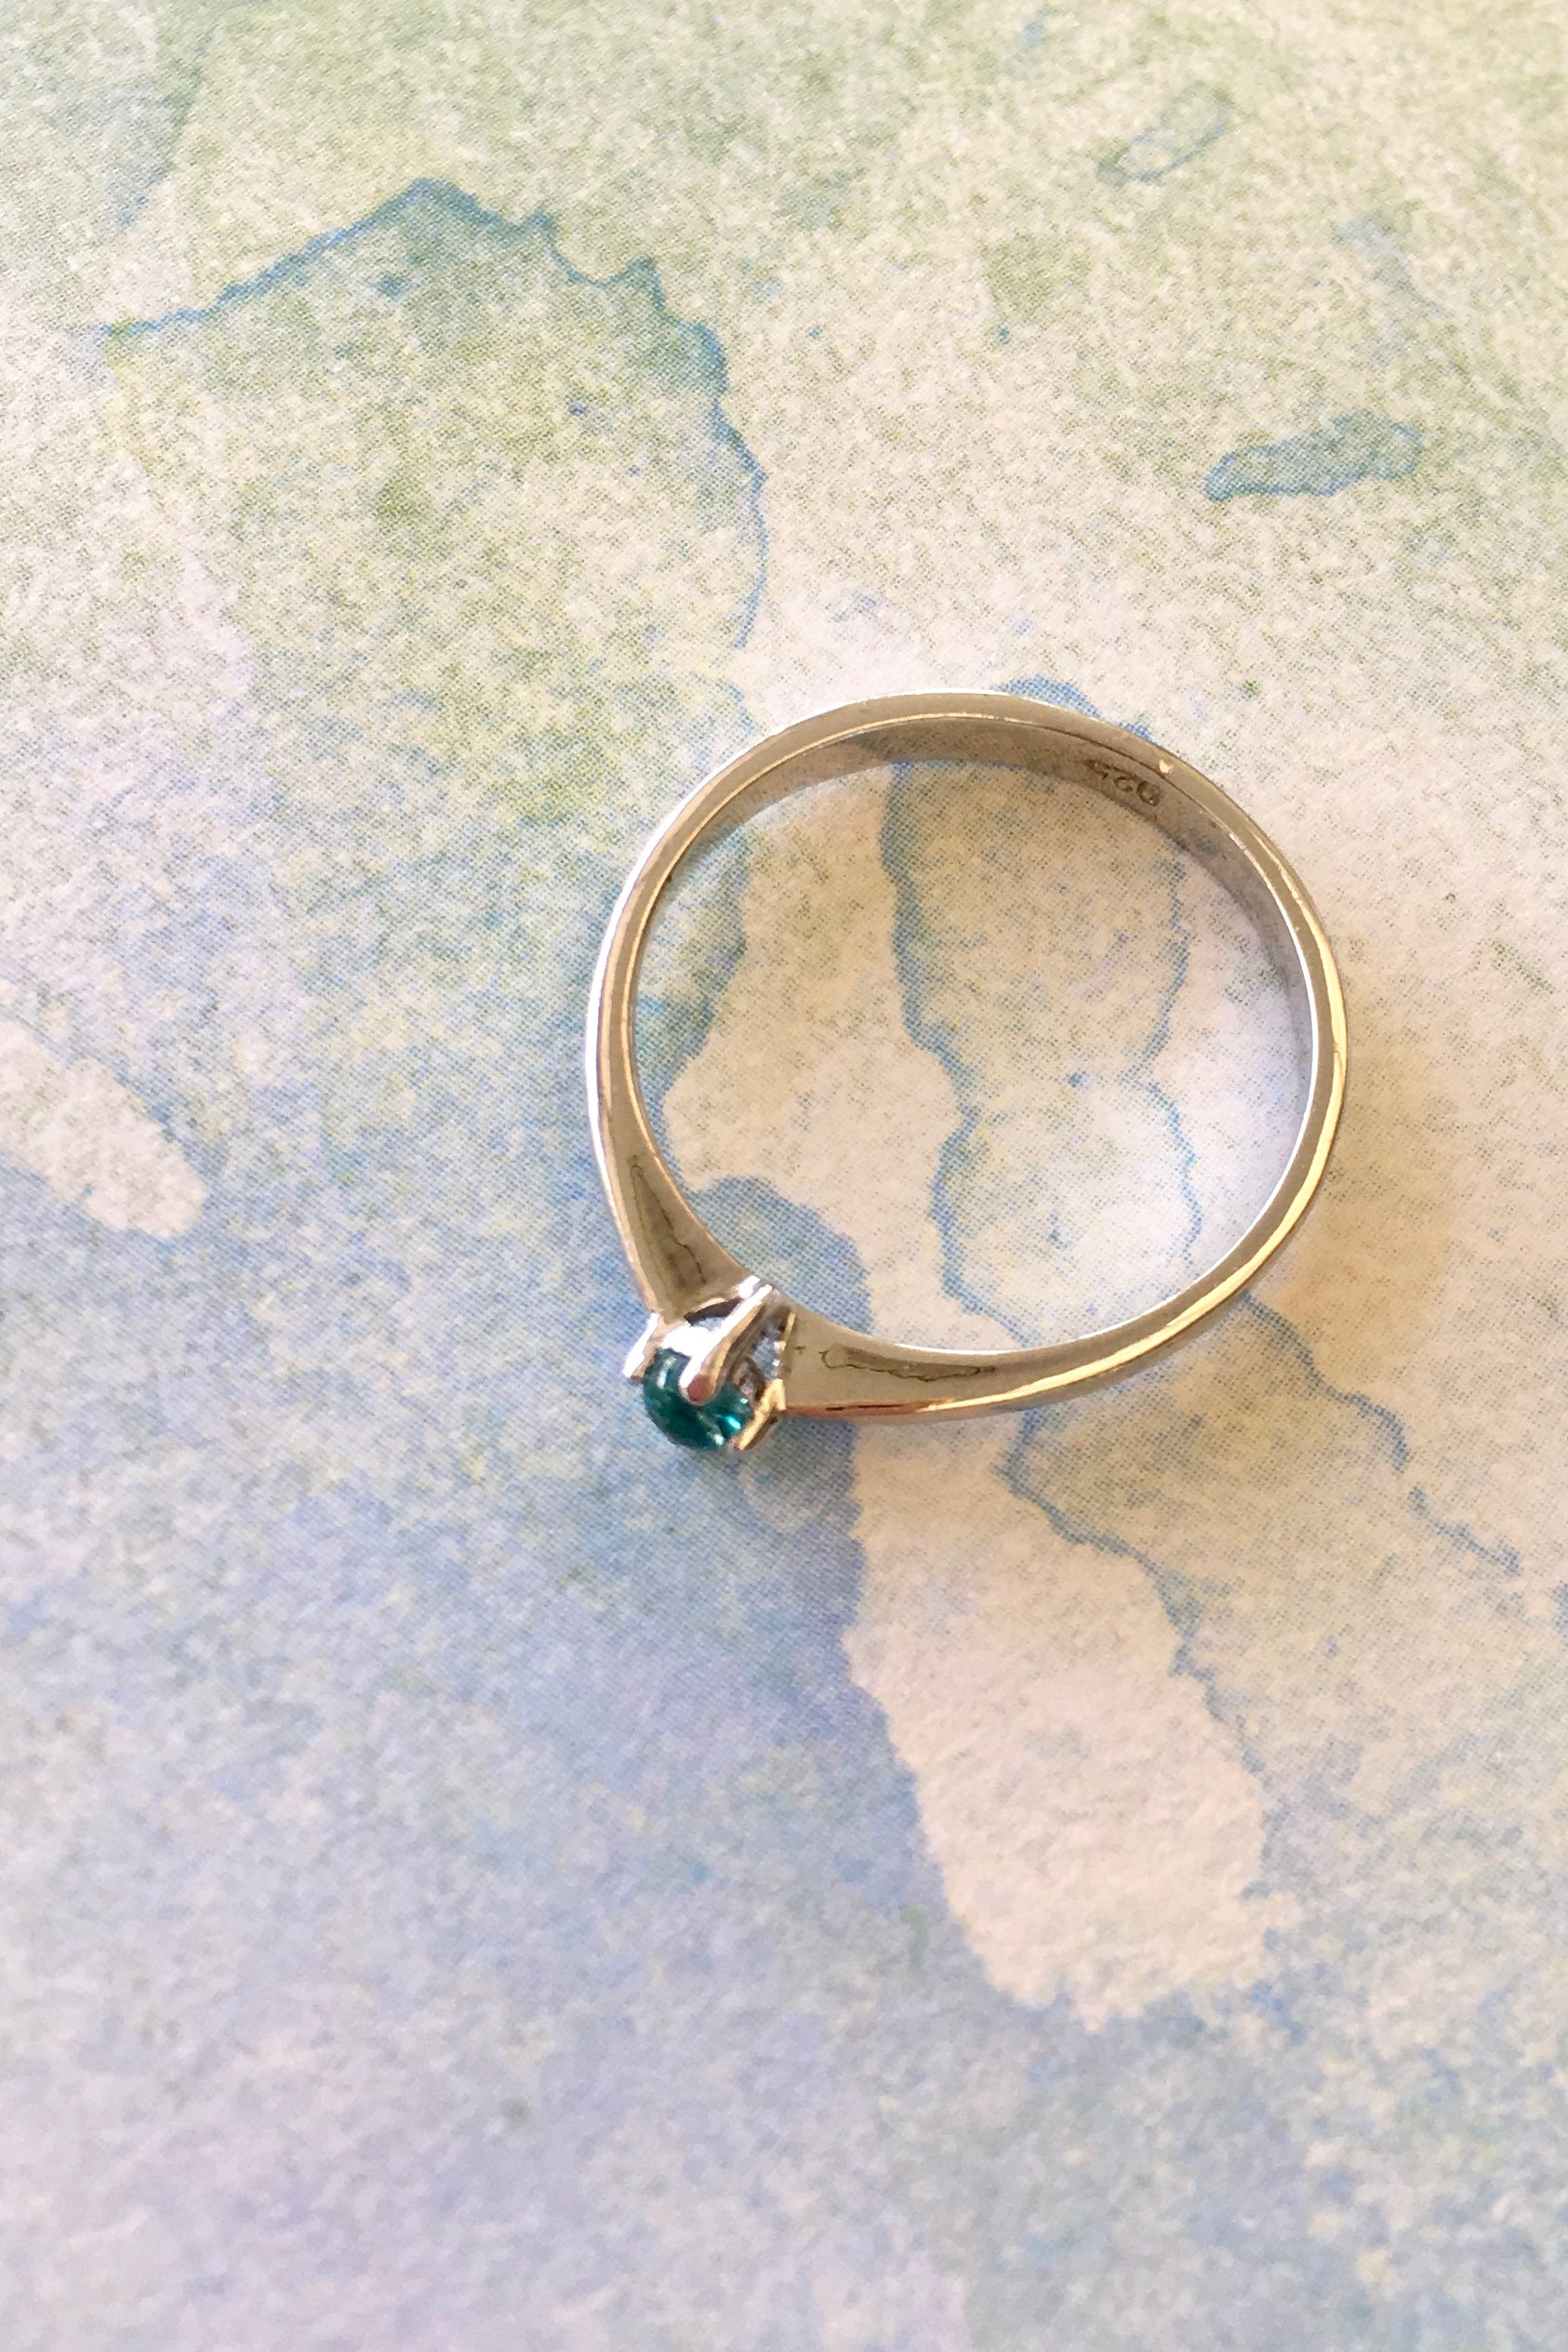 Ring with Blue Green Tourmaline Gemstone in a Silver Setting 2